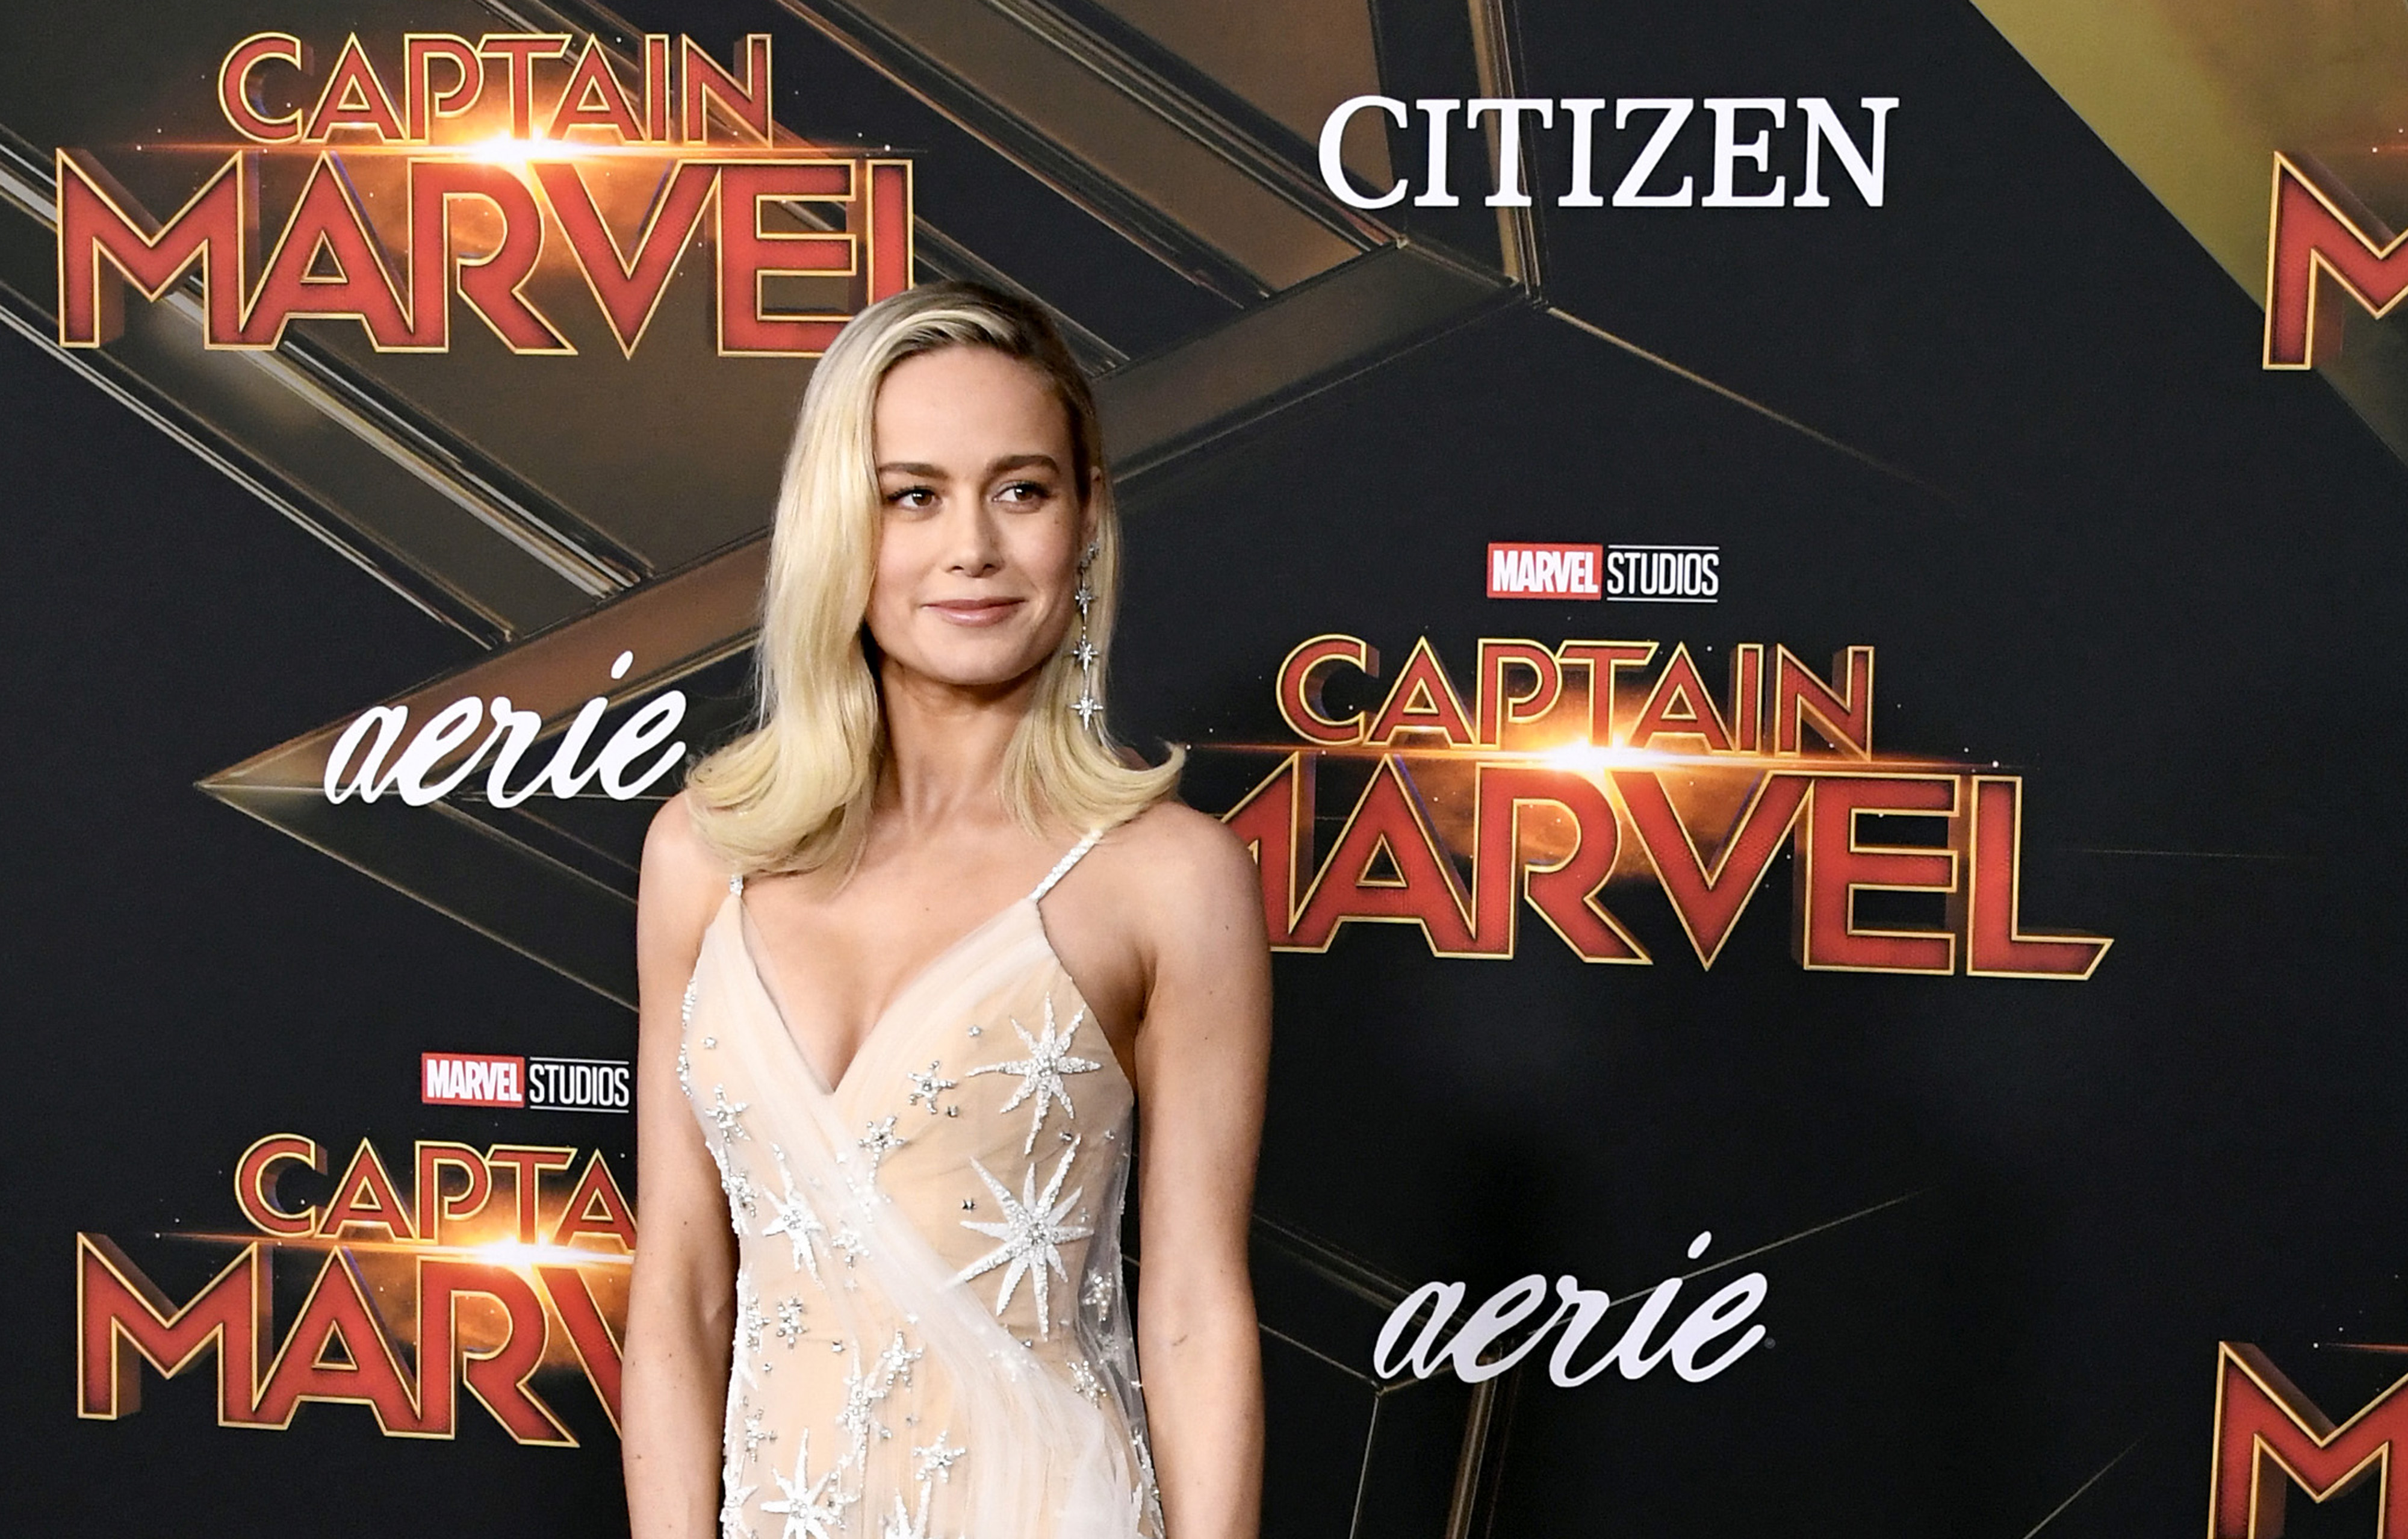 Captain Marvel 2': Brie Larson Reportedly Does Not Want to Be Overshadowed